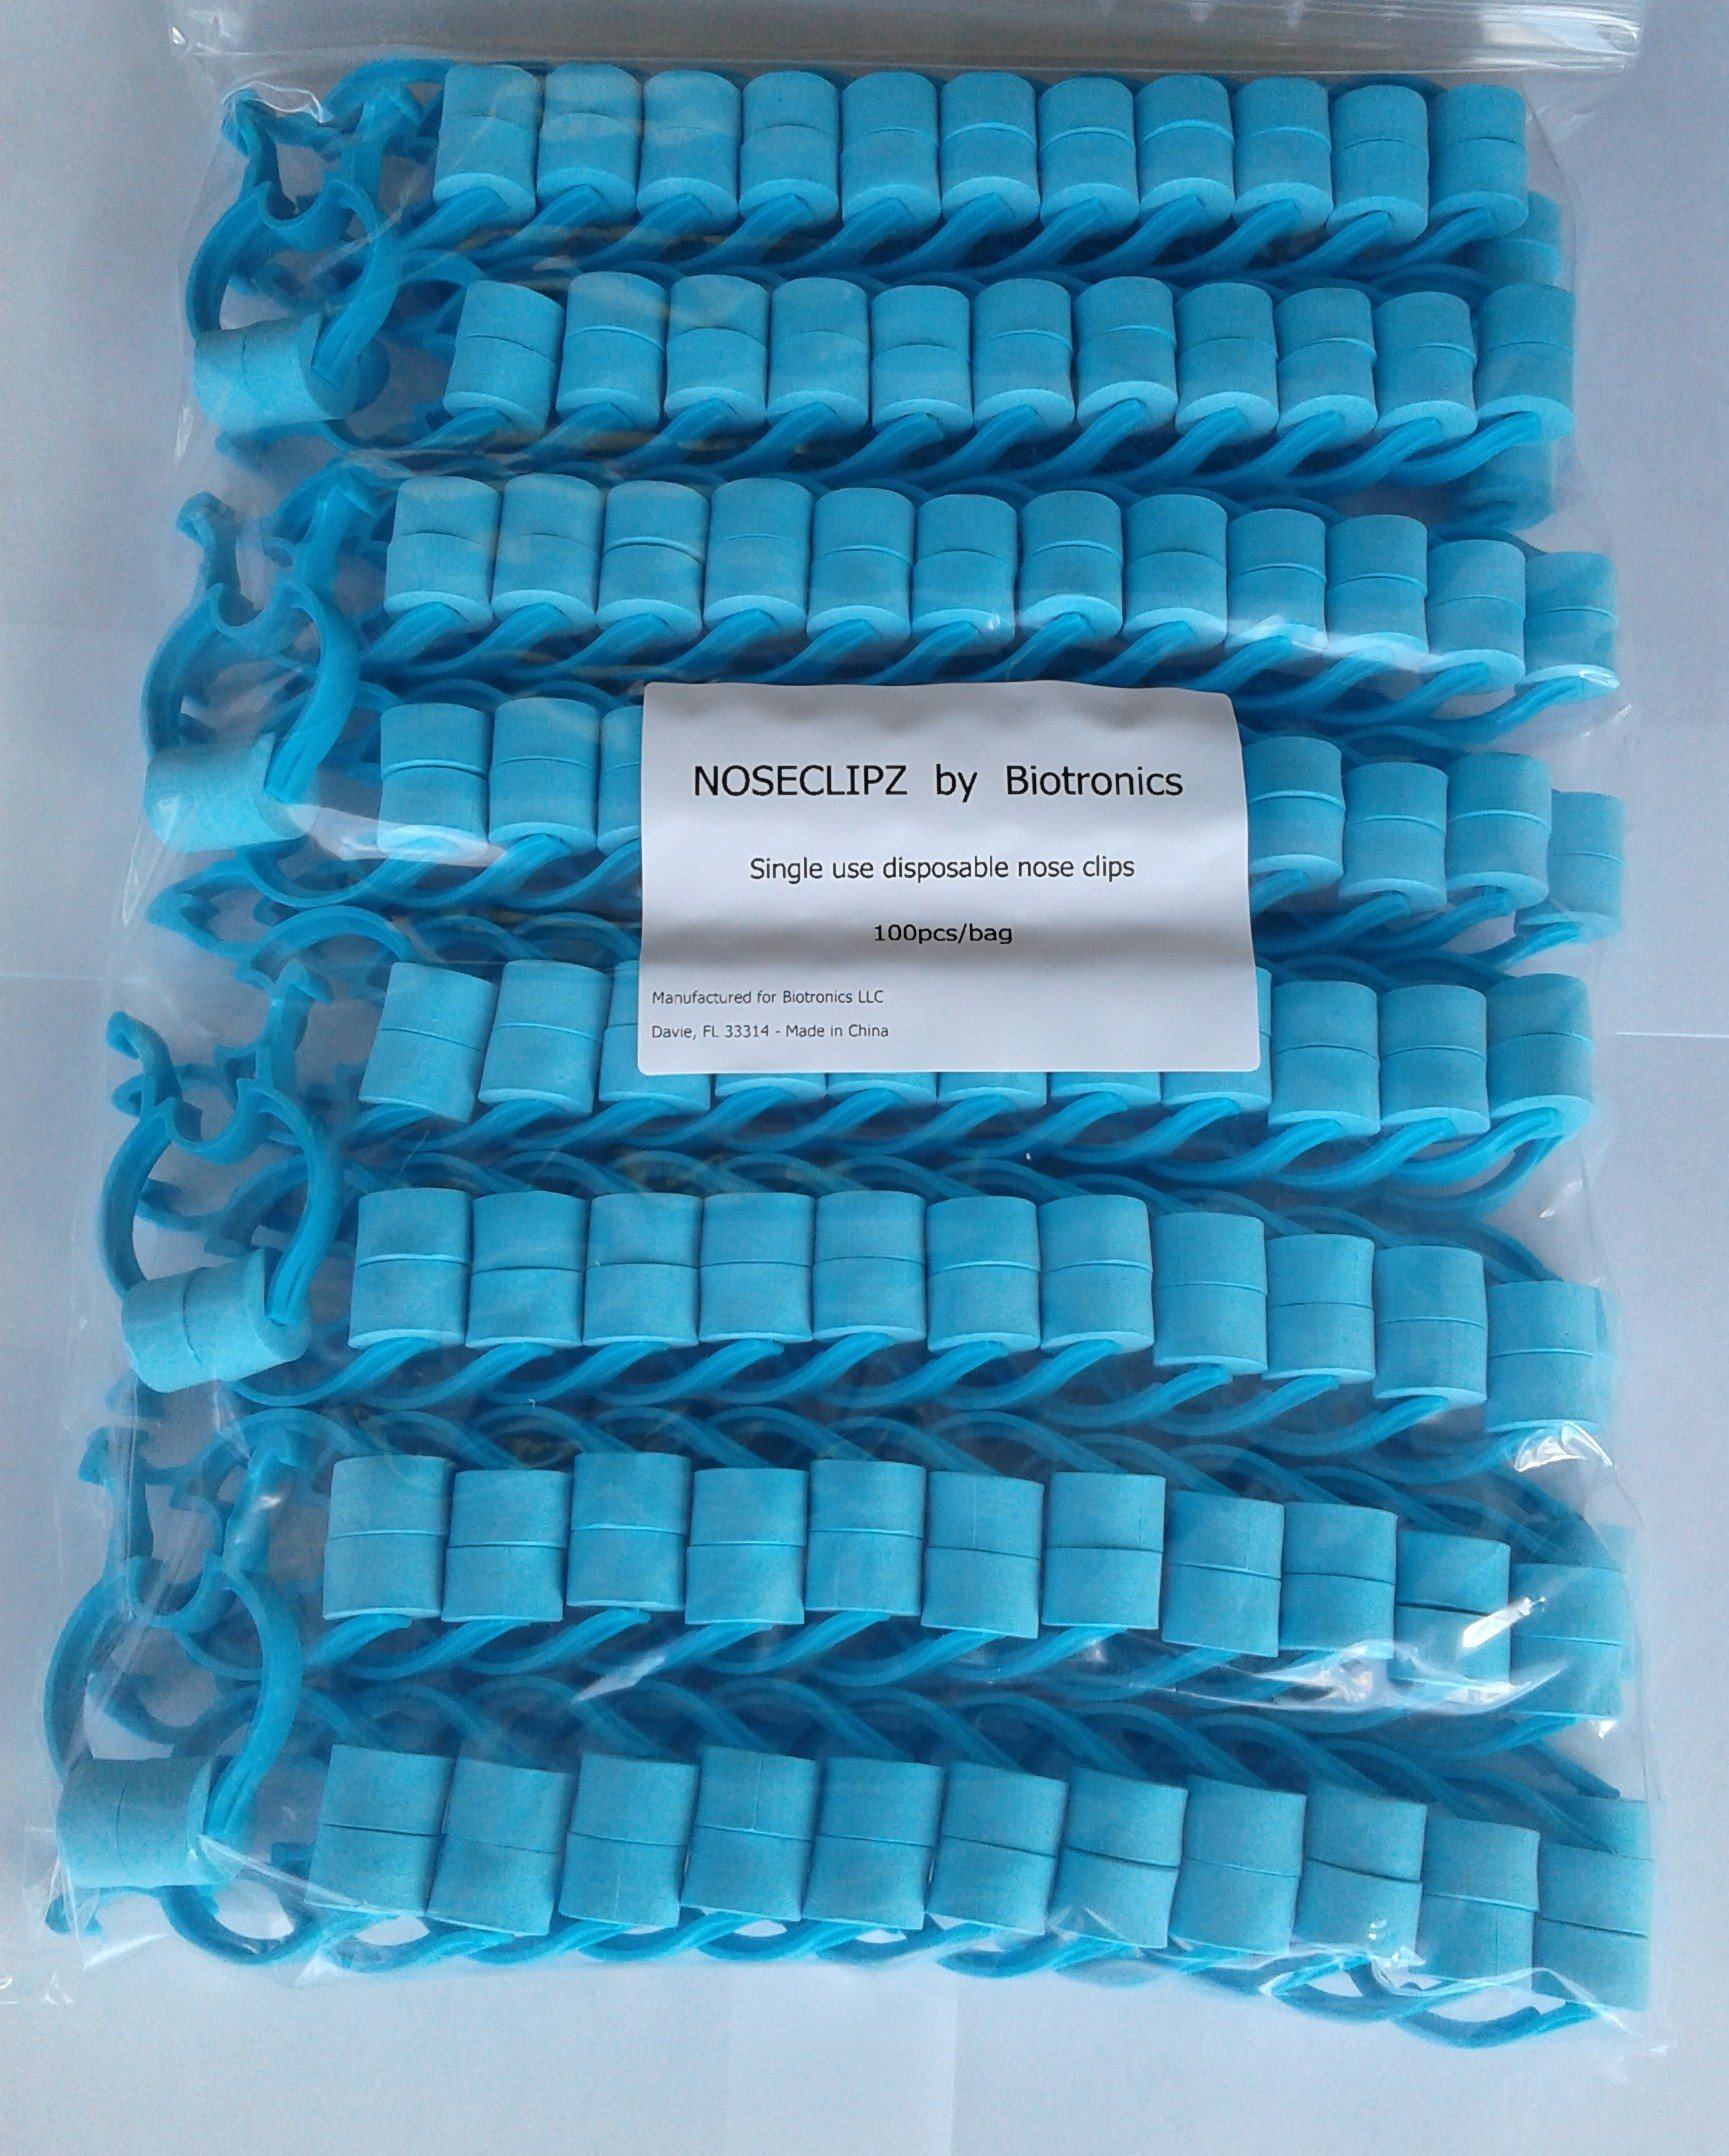 Noseclips - Foam Padded - BiotronicsBiz Noseclipz - Bag of 100 (Blue/Green) Nose Clips by Biotronics by Noseclipz (Image #2)